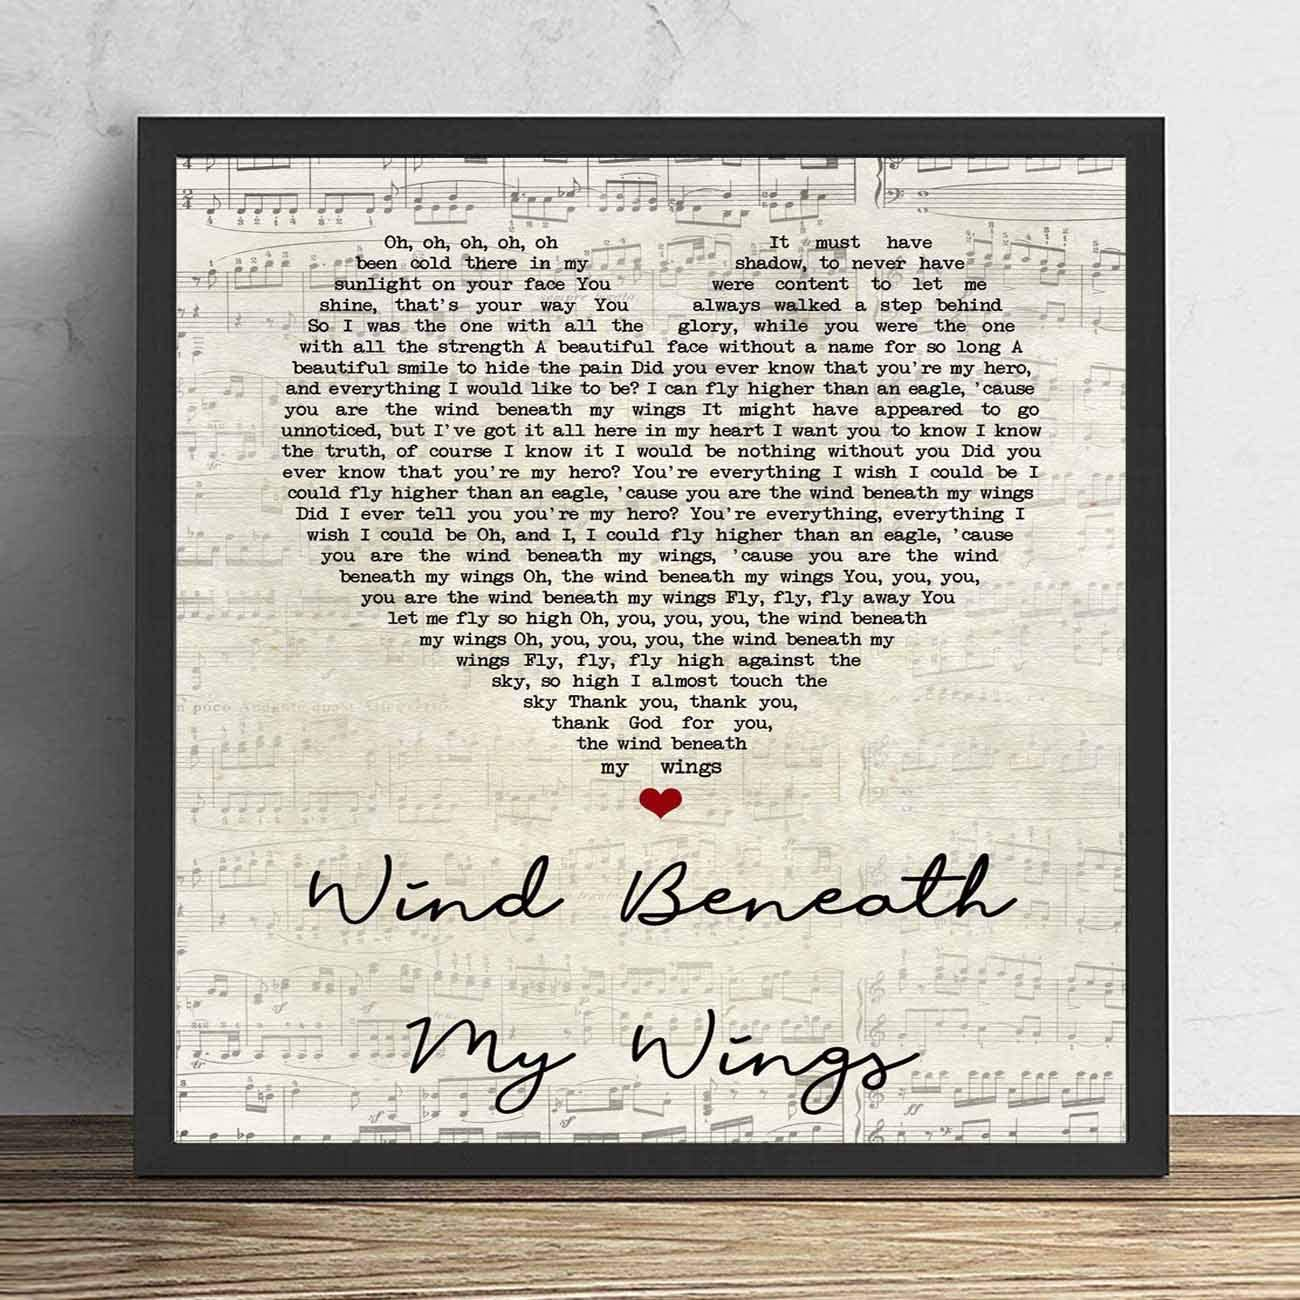 4 faionjaycho Wind Beneath My Wings Script Heart Song Lyric Quote Wall Art Gift Print Anniversary Valentine's Wedding Gift Home Decor Father's Day 8X8in Framed